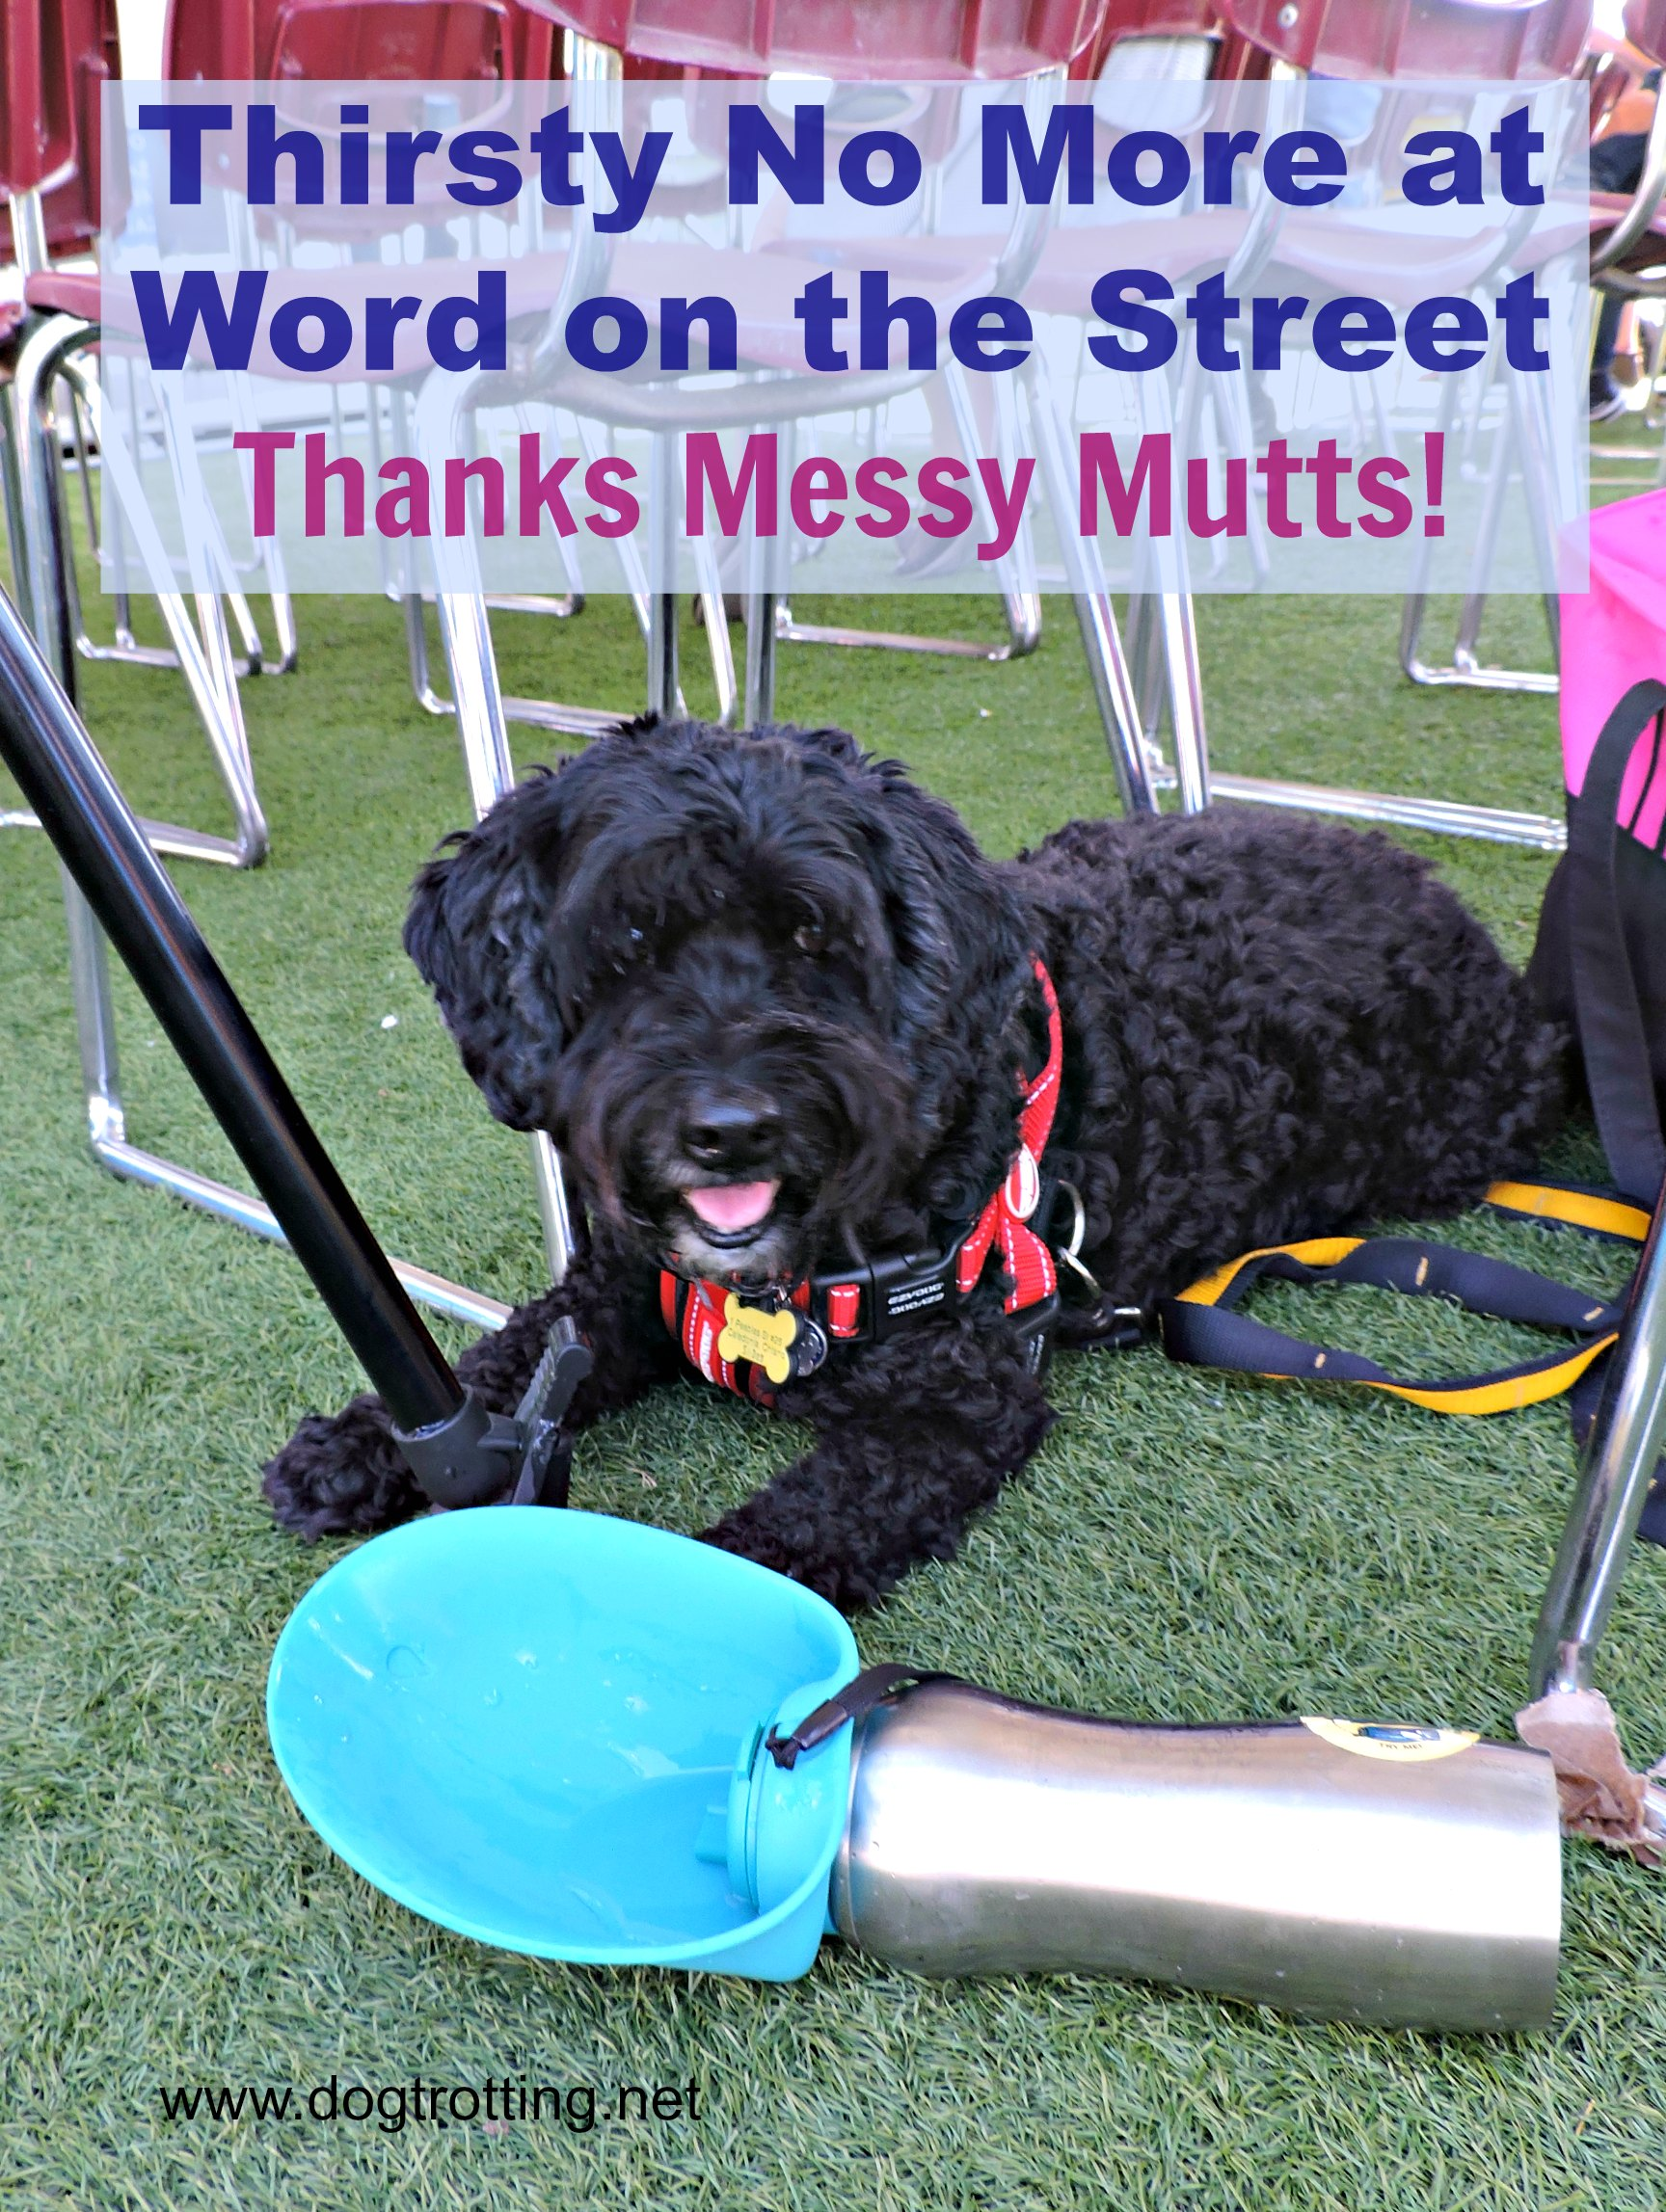 Travel Toronto: Mutts Getting Messy (or thirsty) during Word on the Street 2017